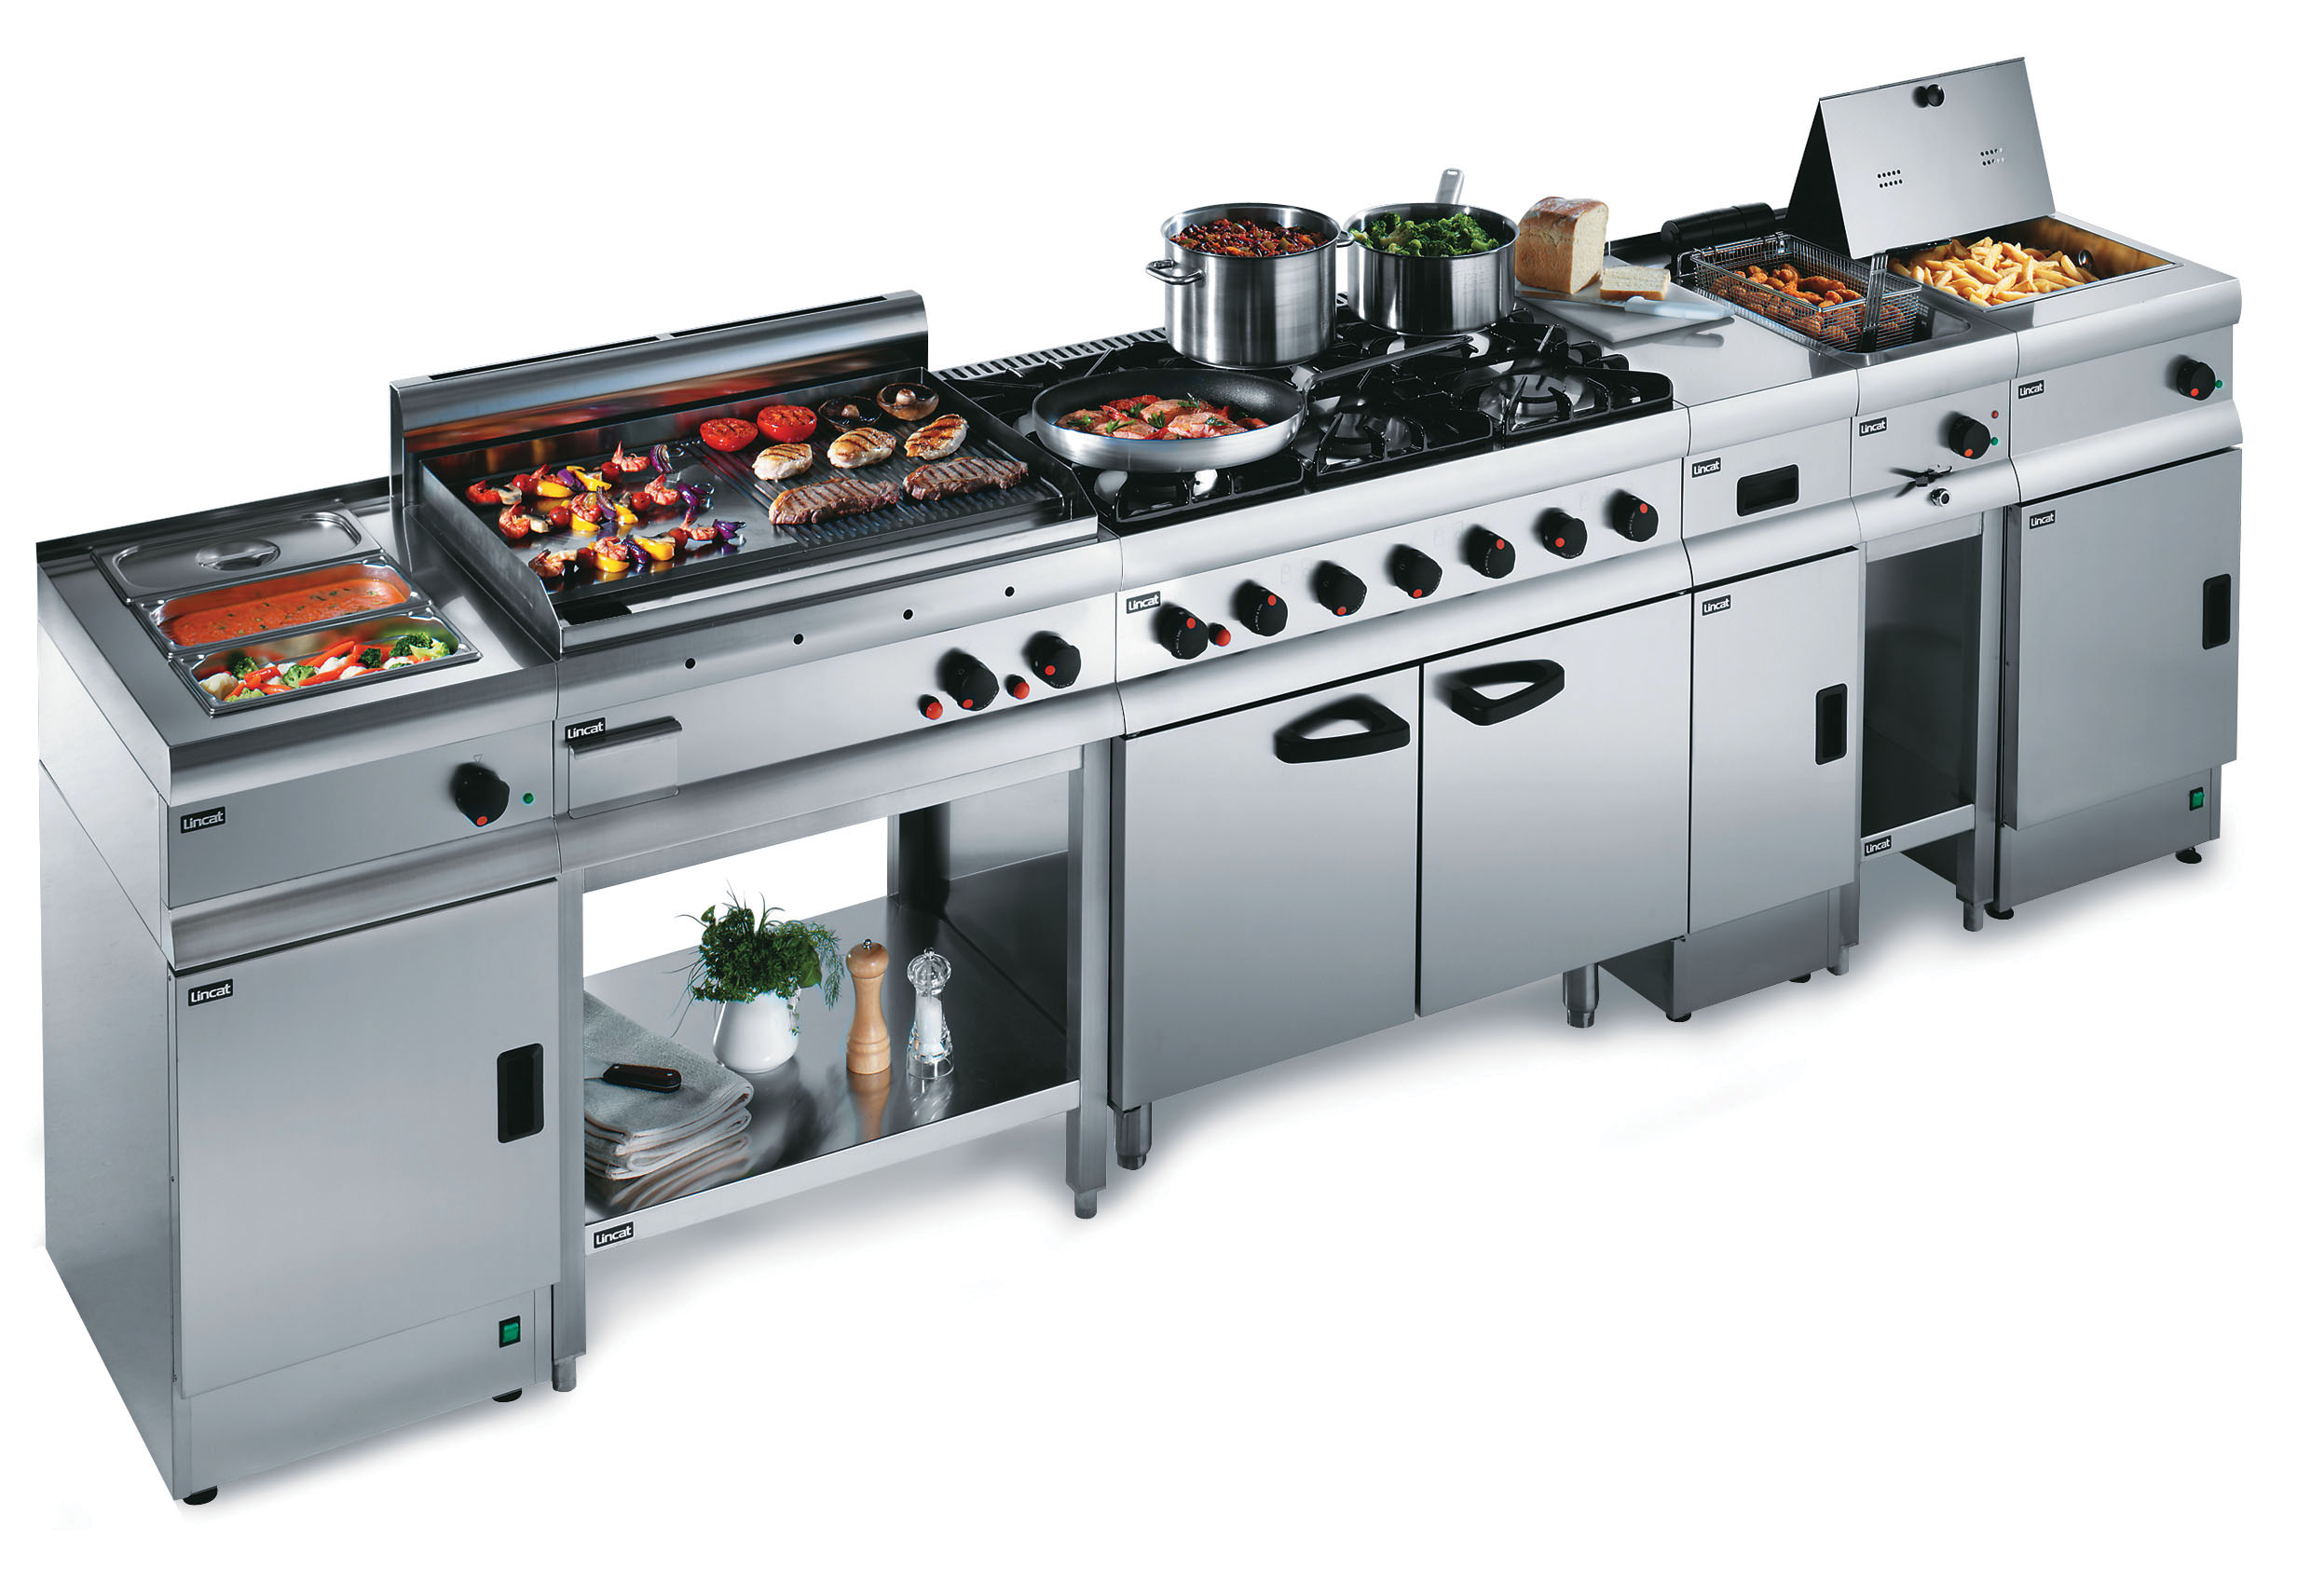 Commercial Cooking Equipment Fire Safety Tips Every Business Should Know